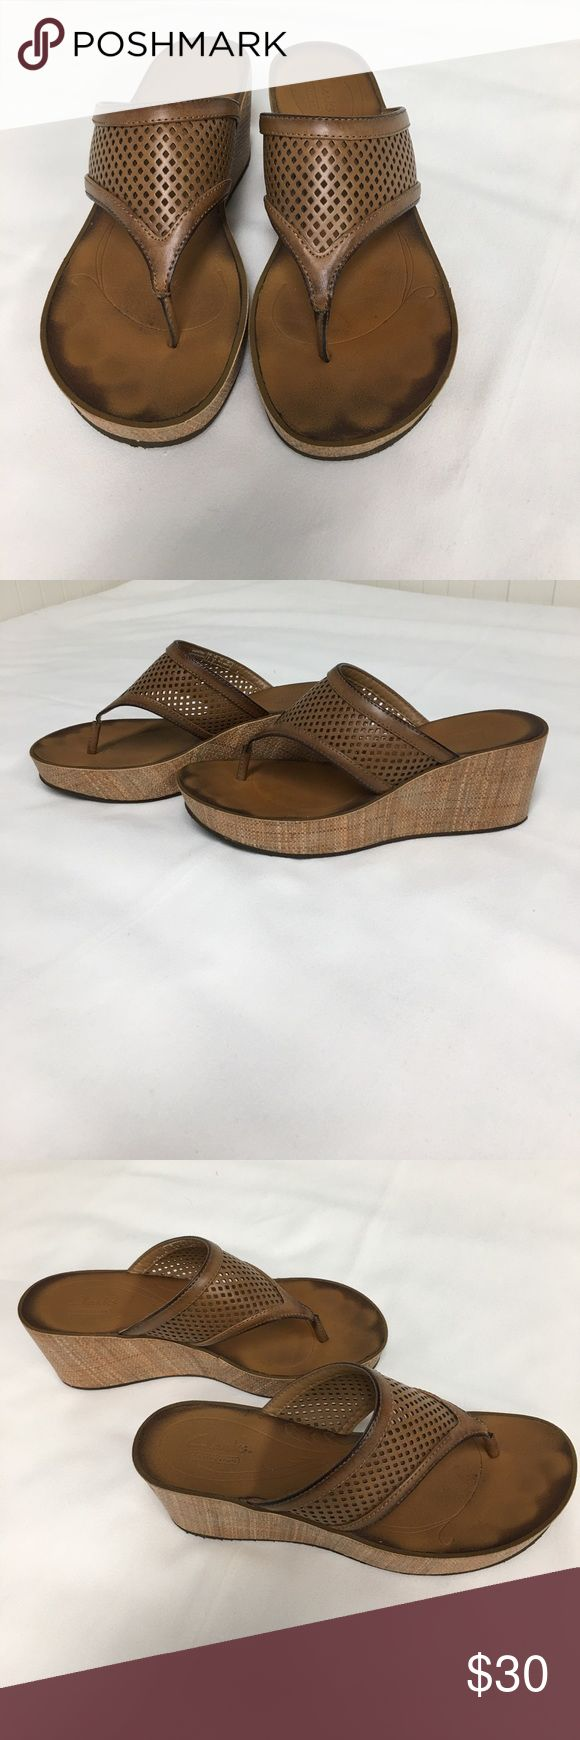 Clarks Tan Leather Wedge Sandal, 8.5 Clarks Tan Leather Wedge Sandal, size 8.5. Rarely worn in excellent condition. Clarks Shoes Sandals